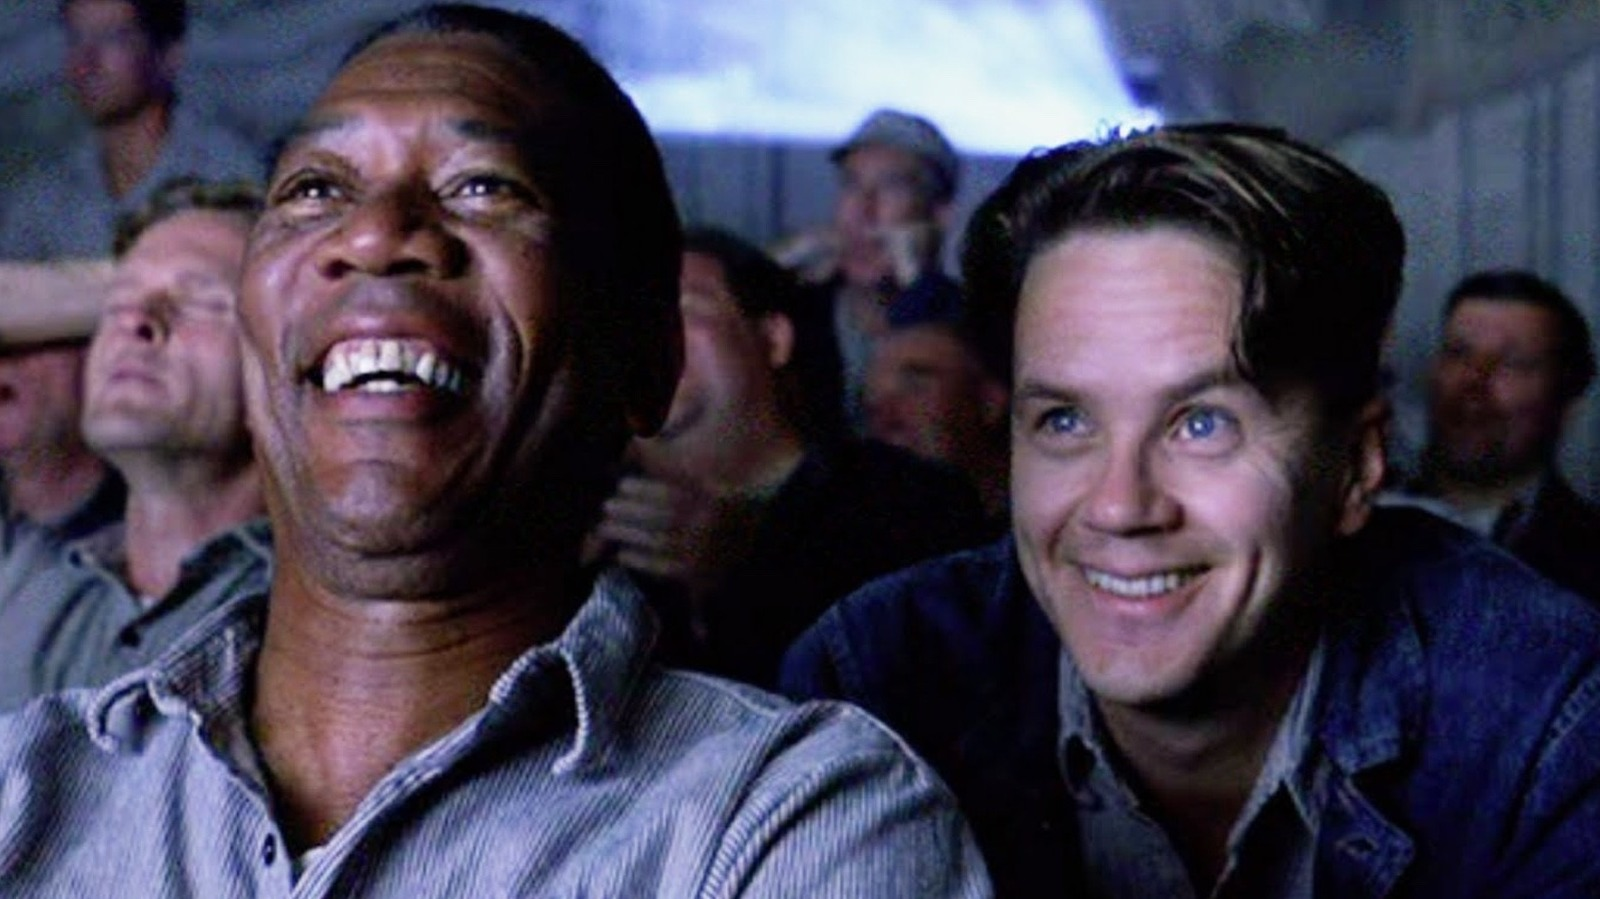 How Shawshank Redemption Is Different From The Book